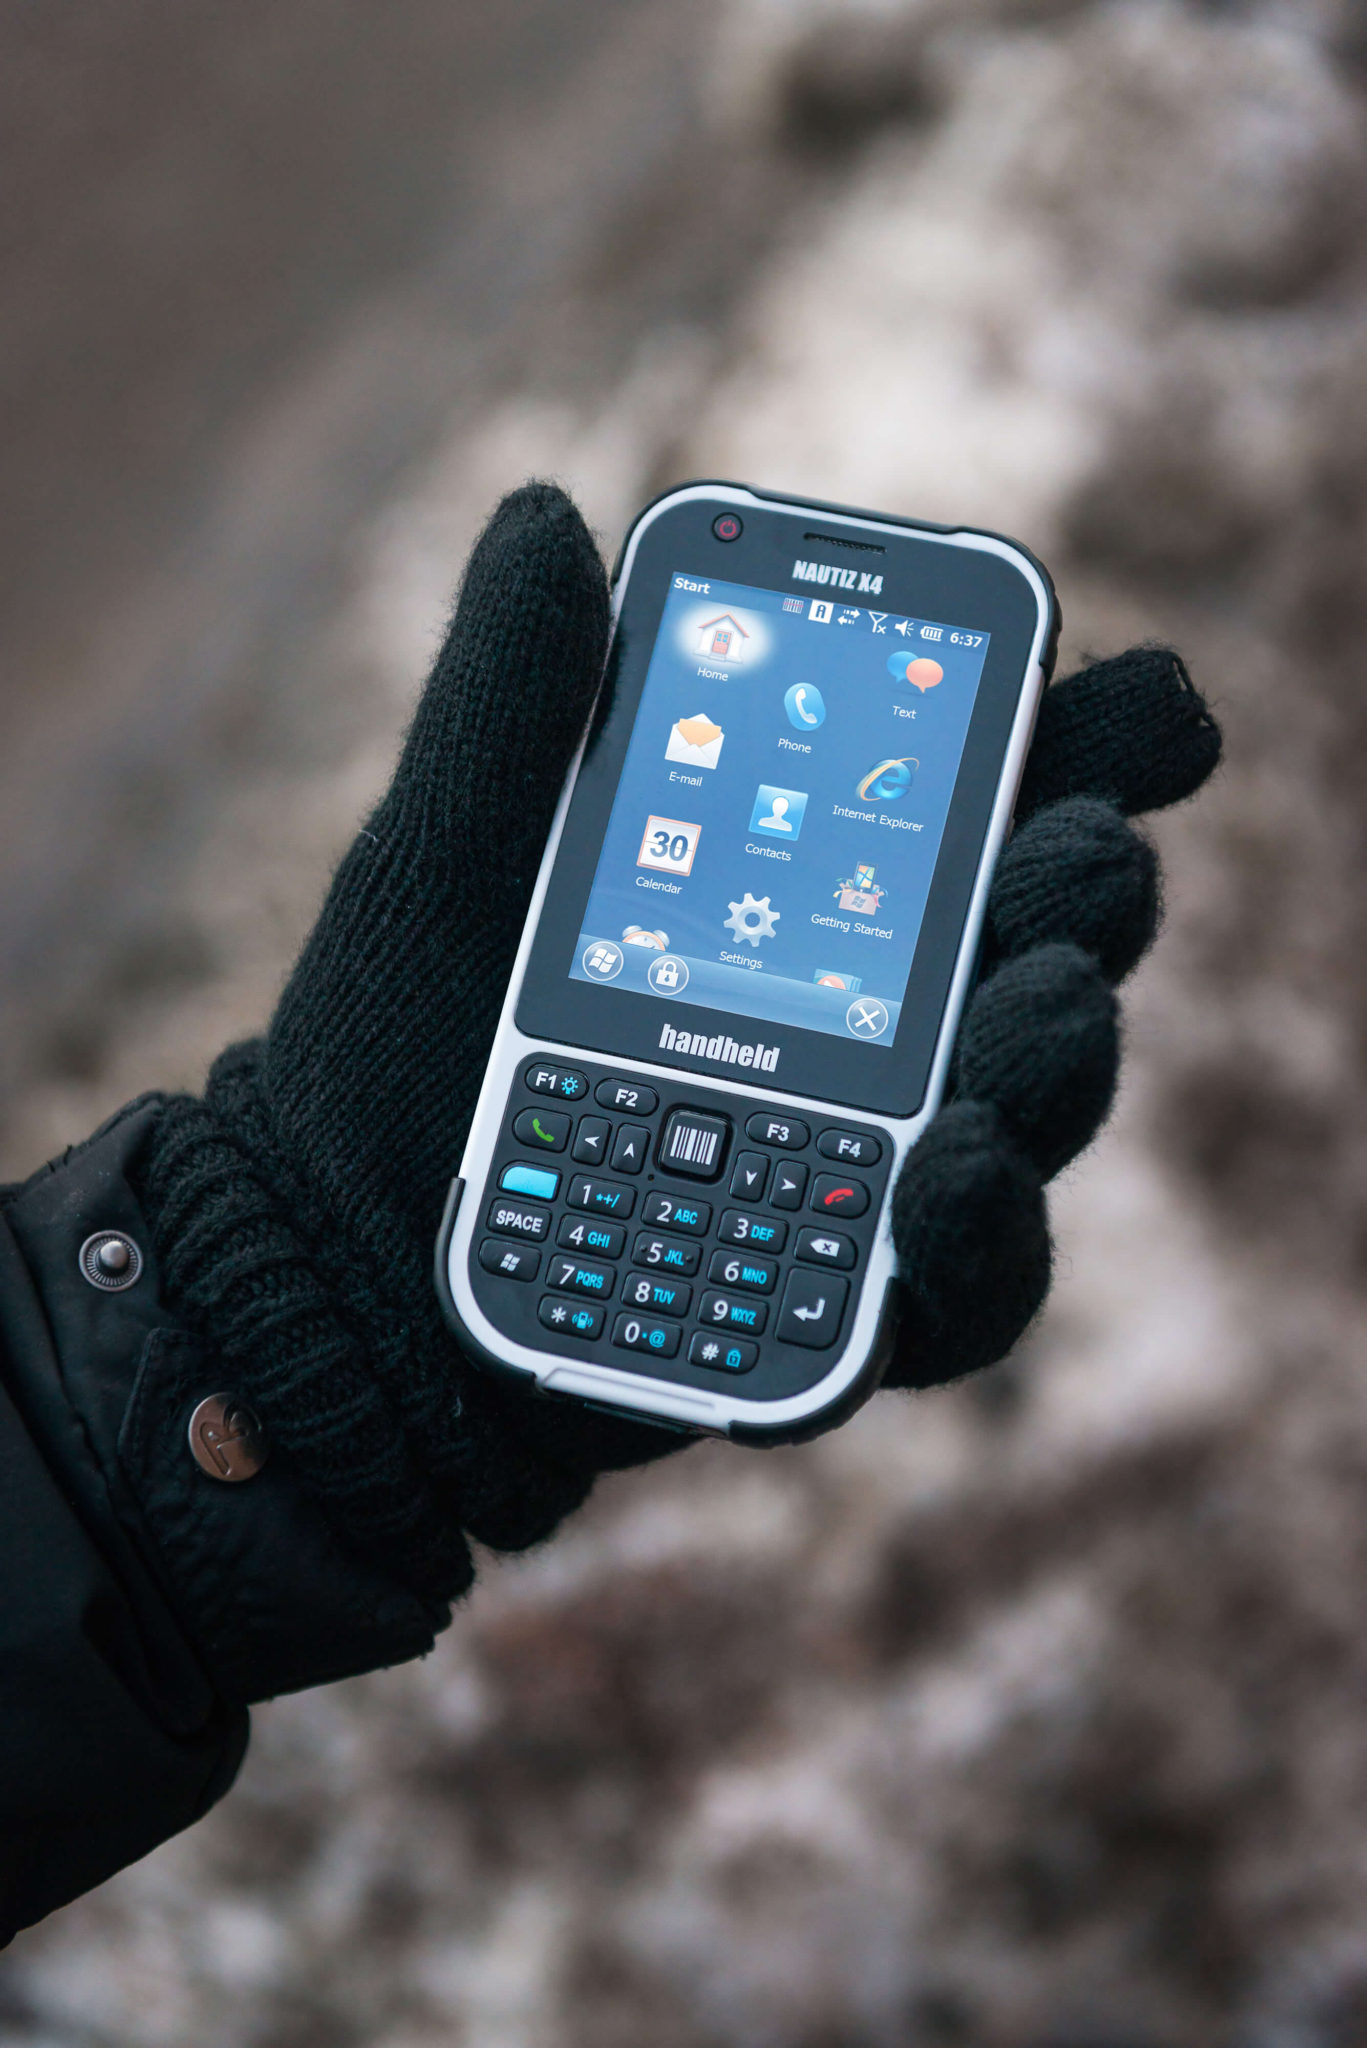 nautiz-x4-rugged-ip65-handheld-in-hand